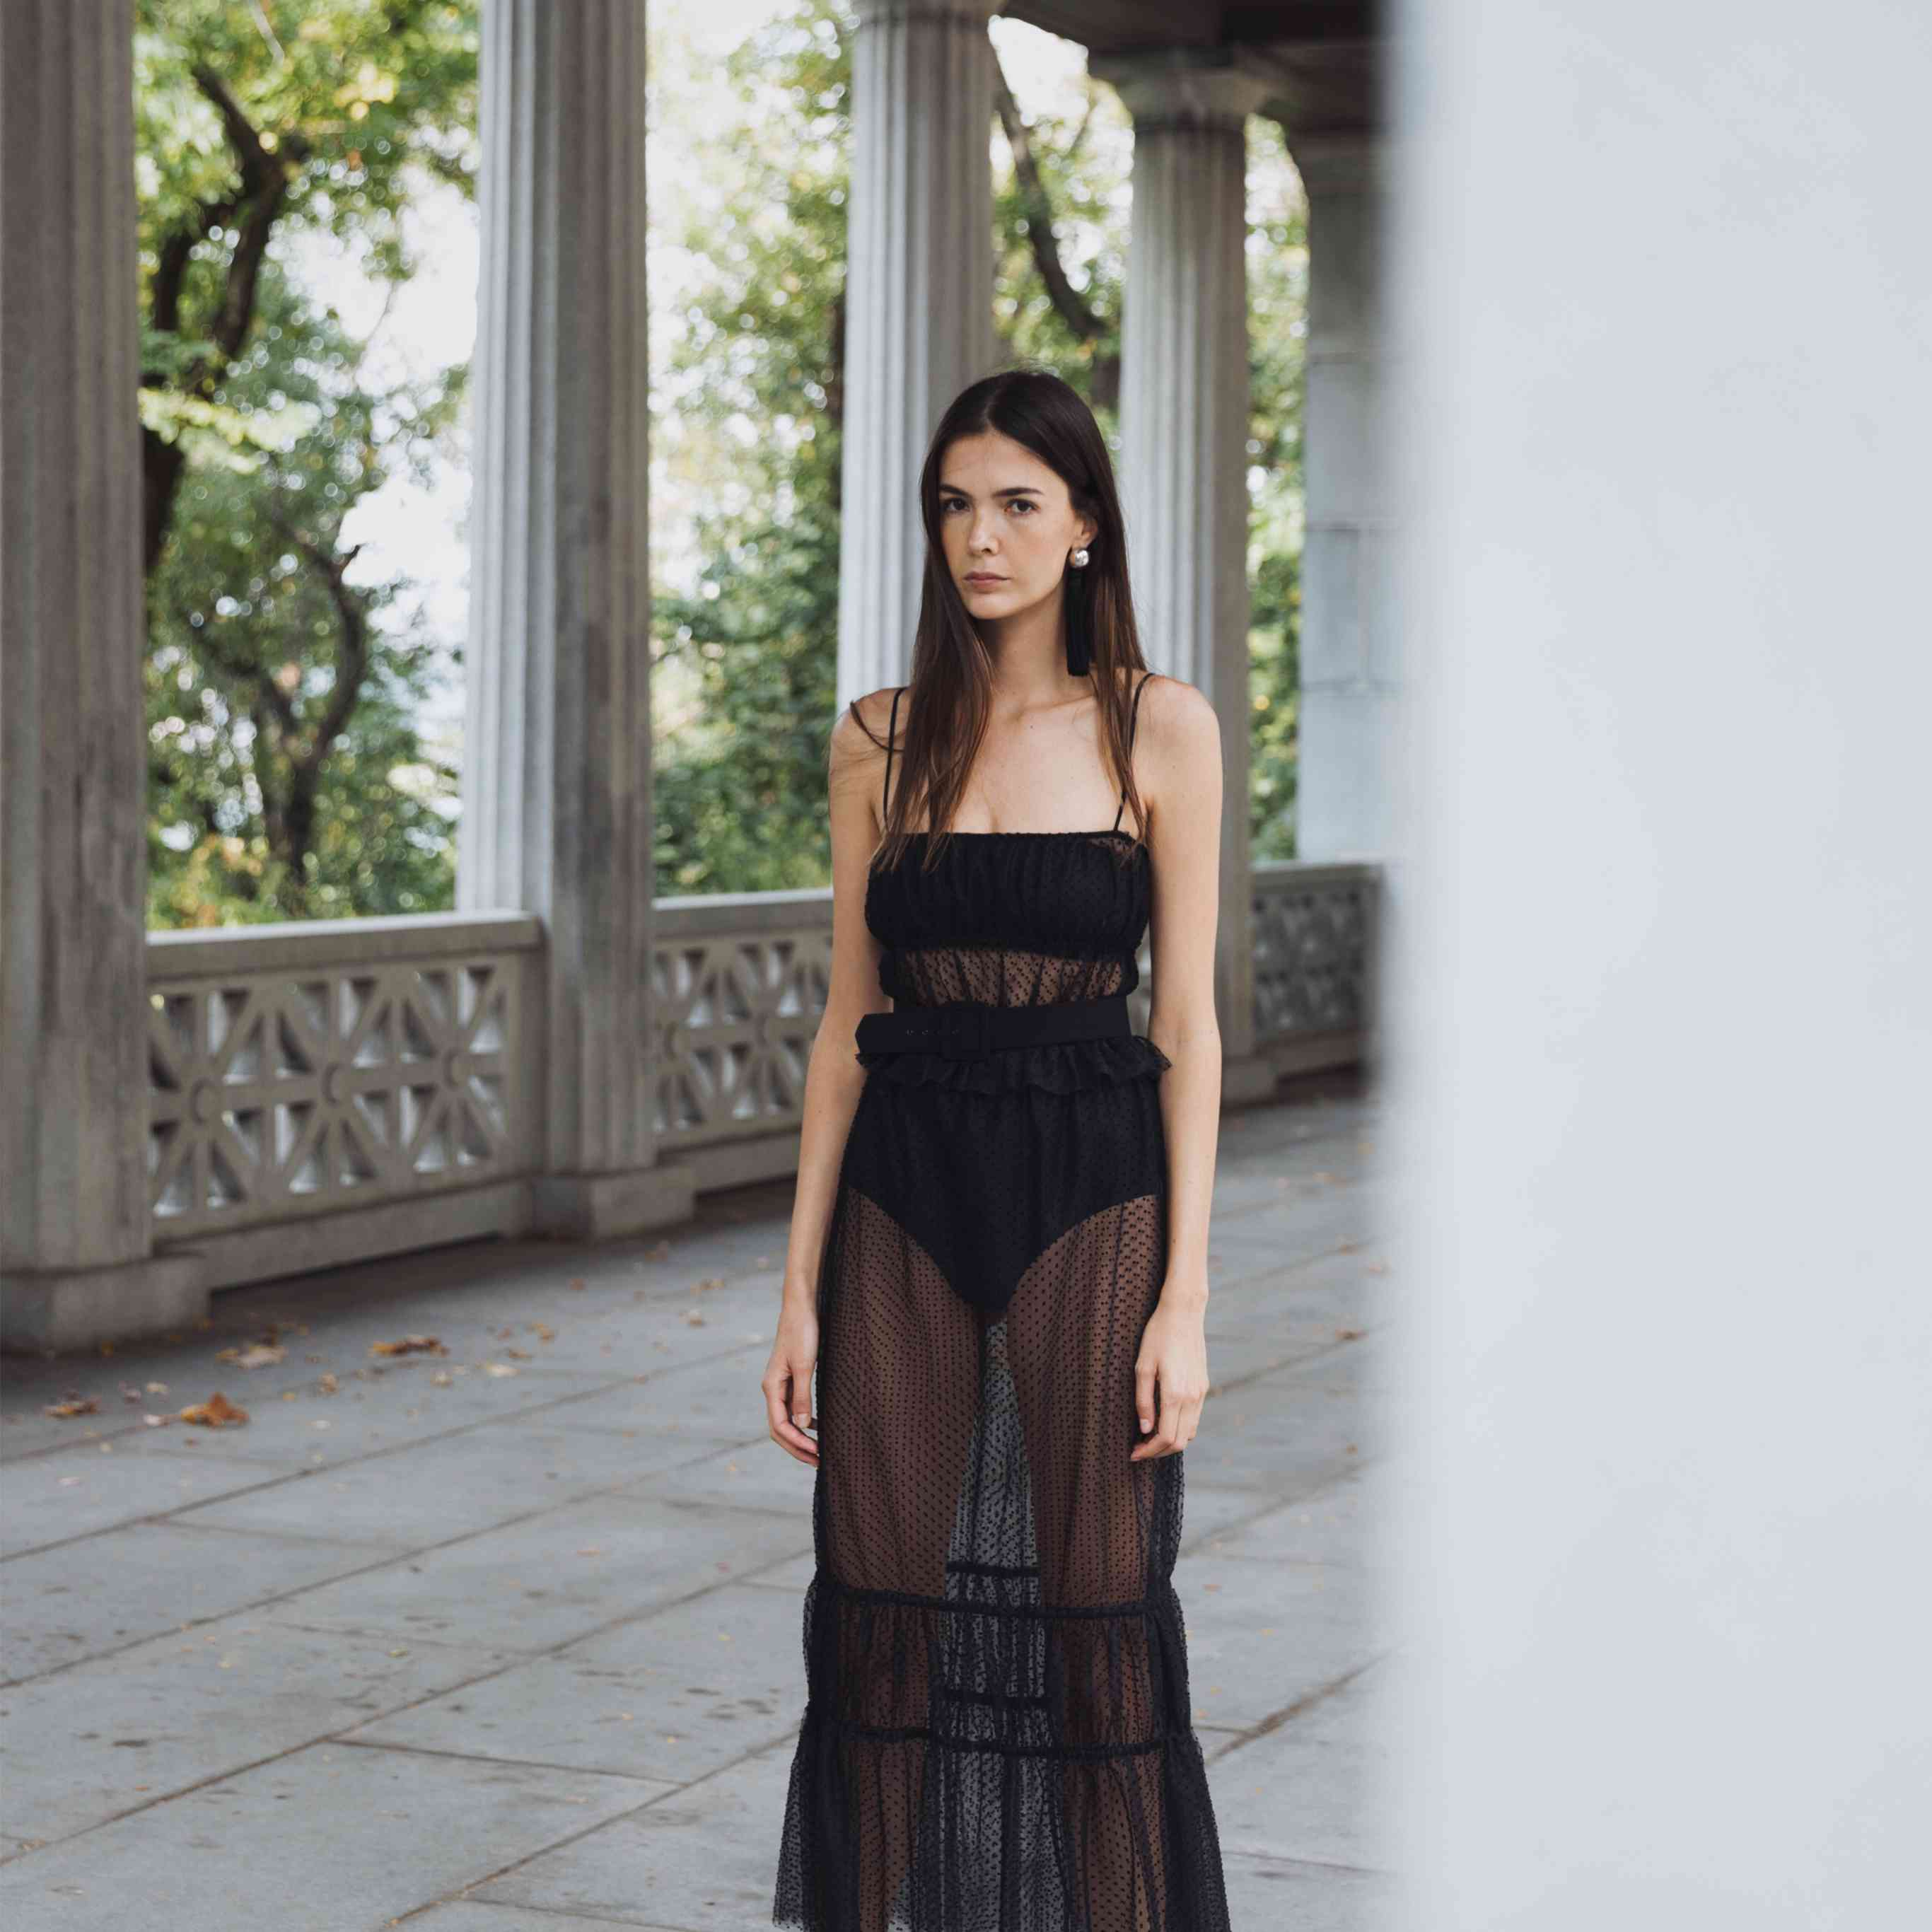 Model in black see-through wedding top and skirt